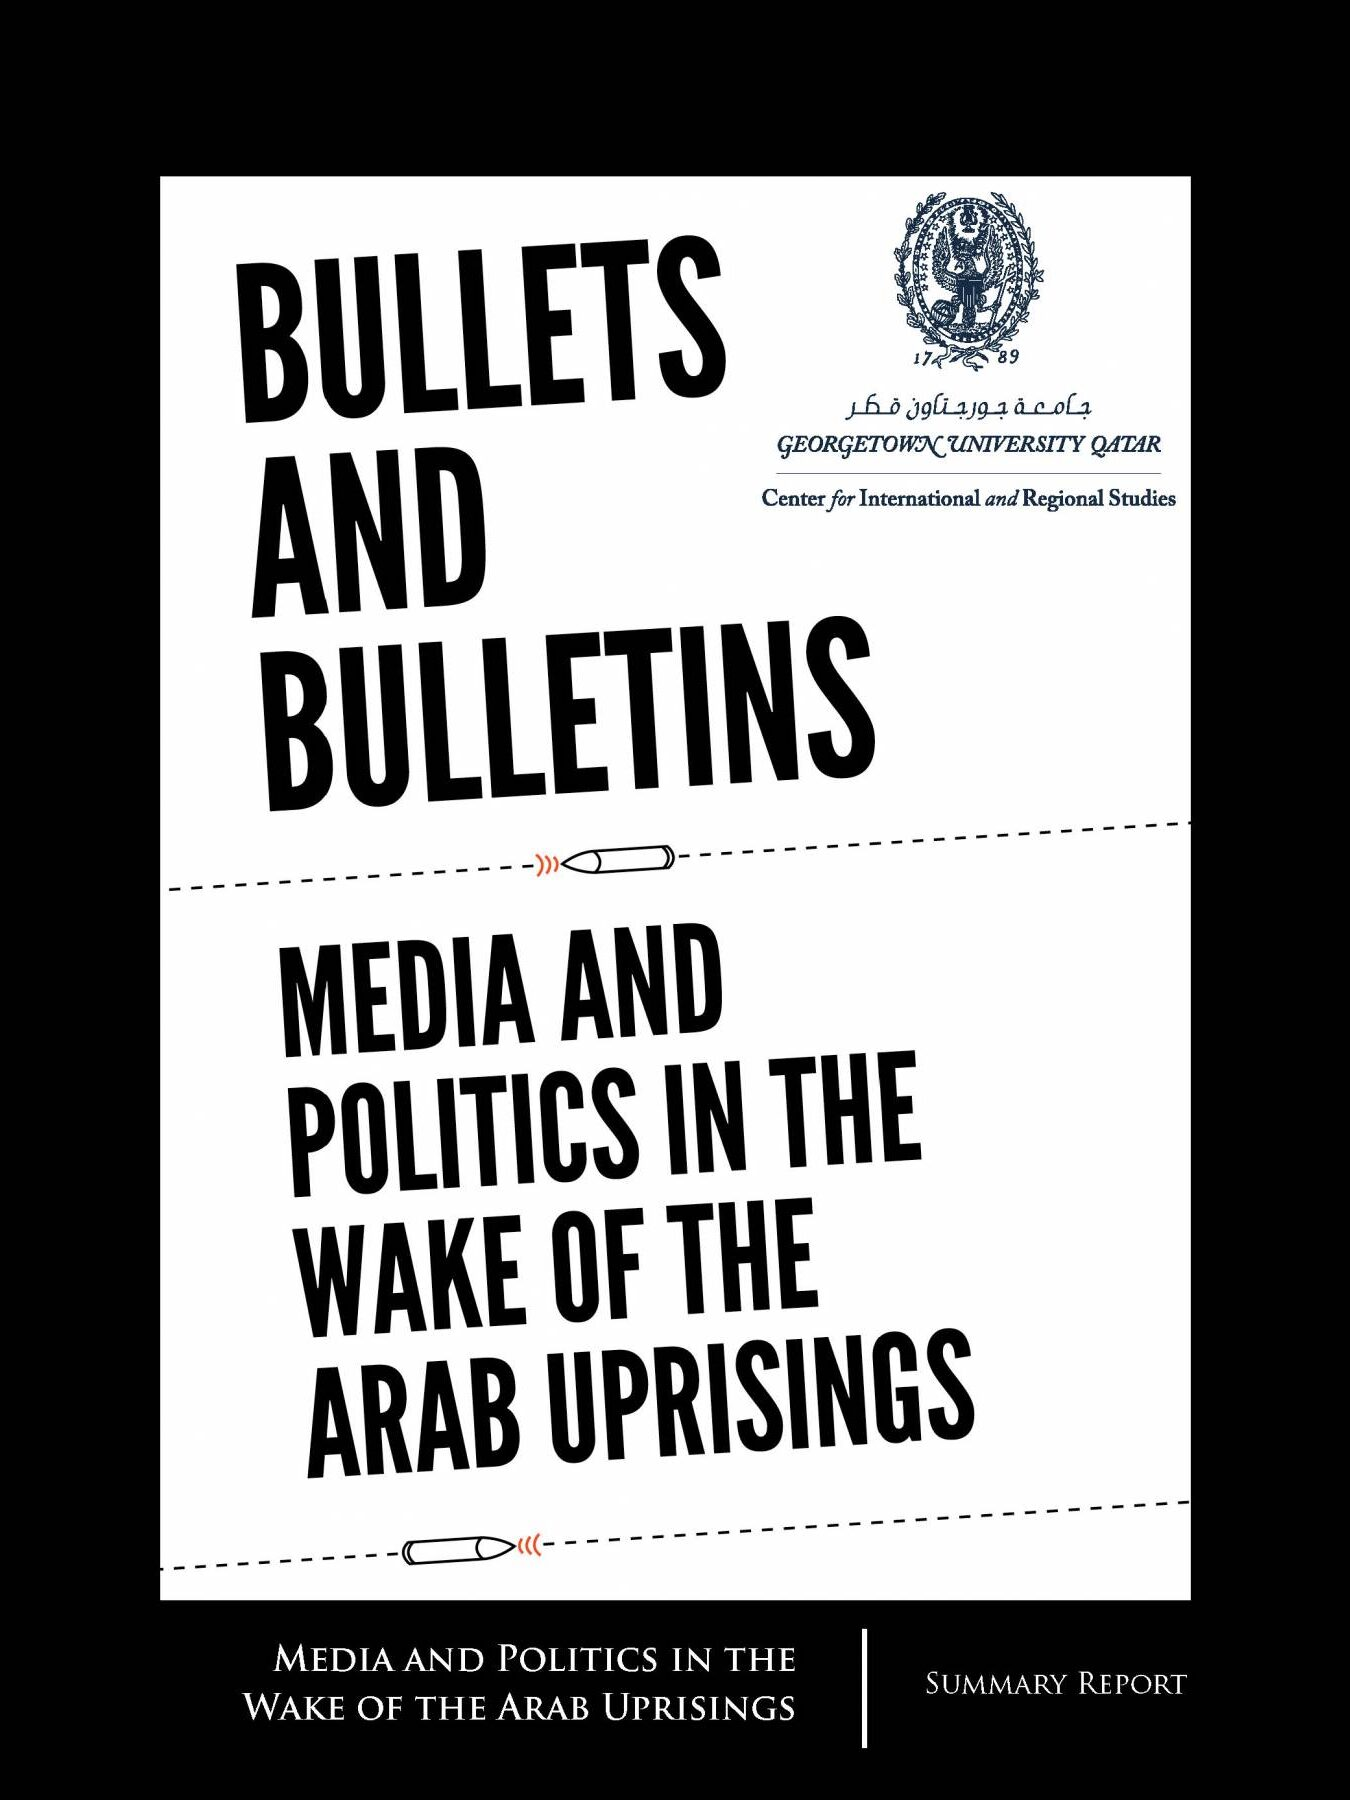 Media and Politics in the Wake of the Arab Uprisings